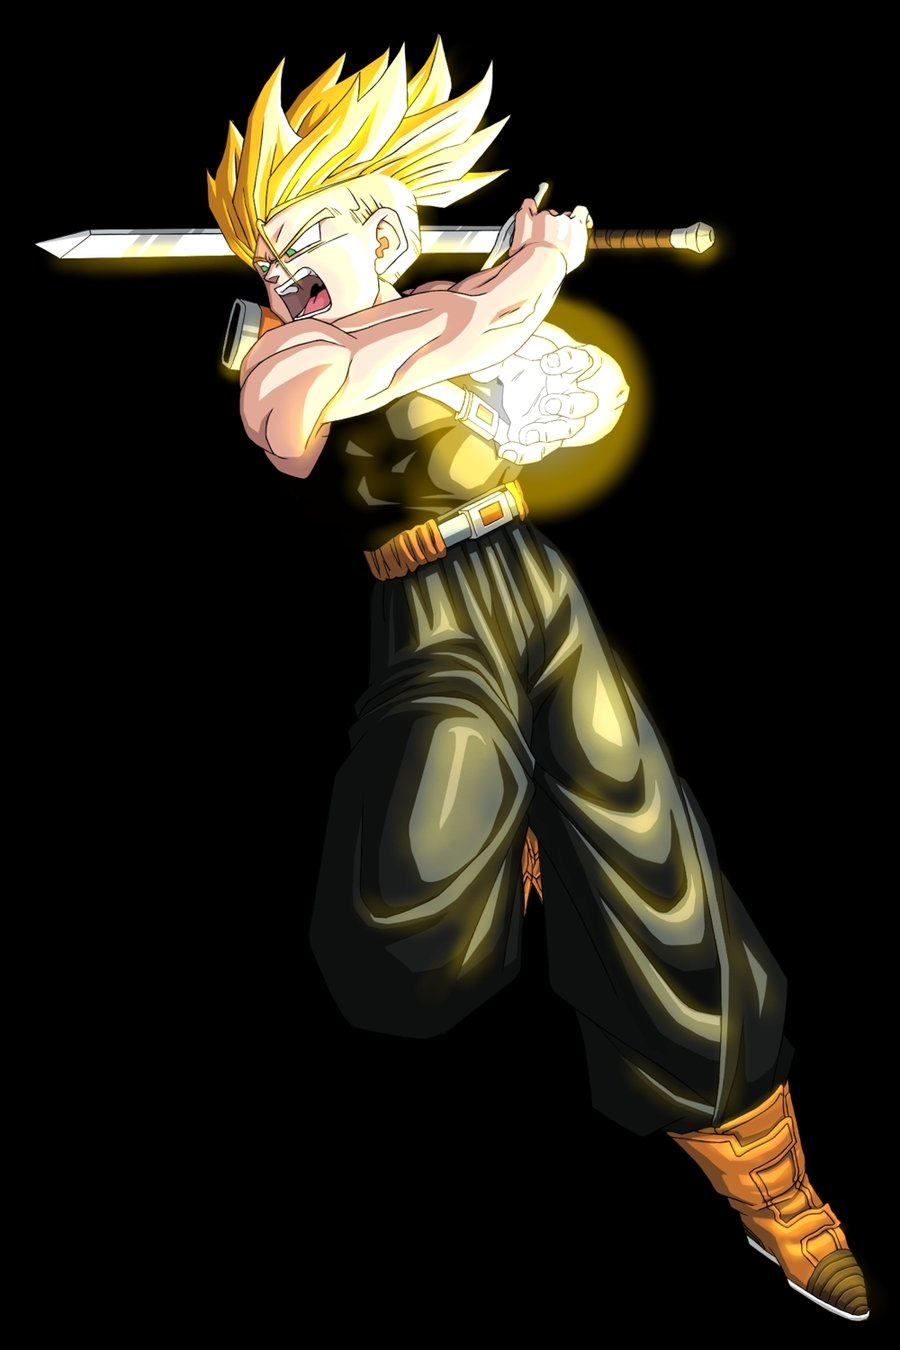 Trunks Dragon Ball Z Wallpapers 29 Wallpapers Adorable Wallpapers